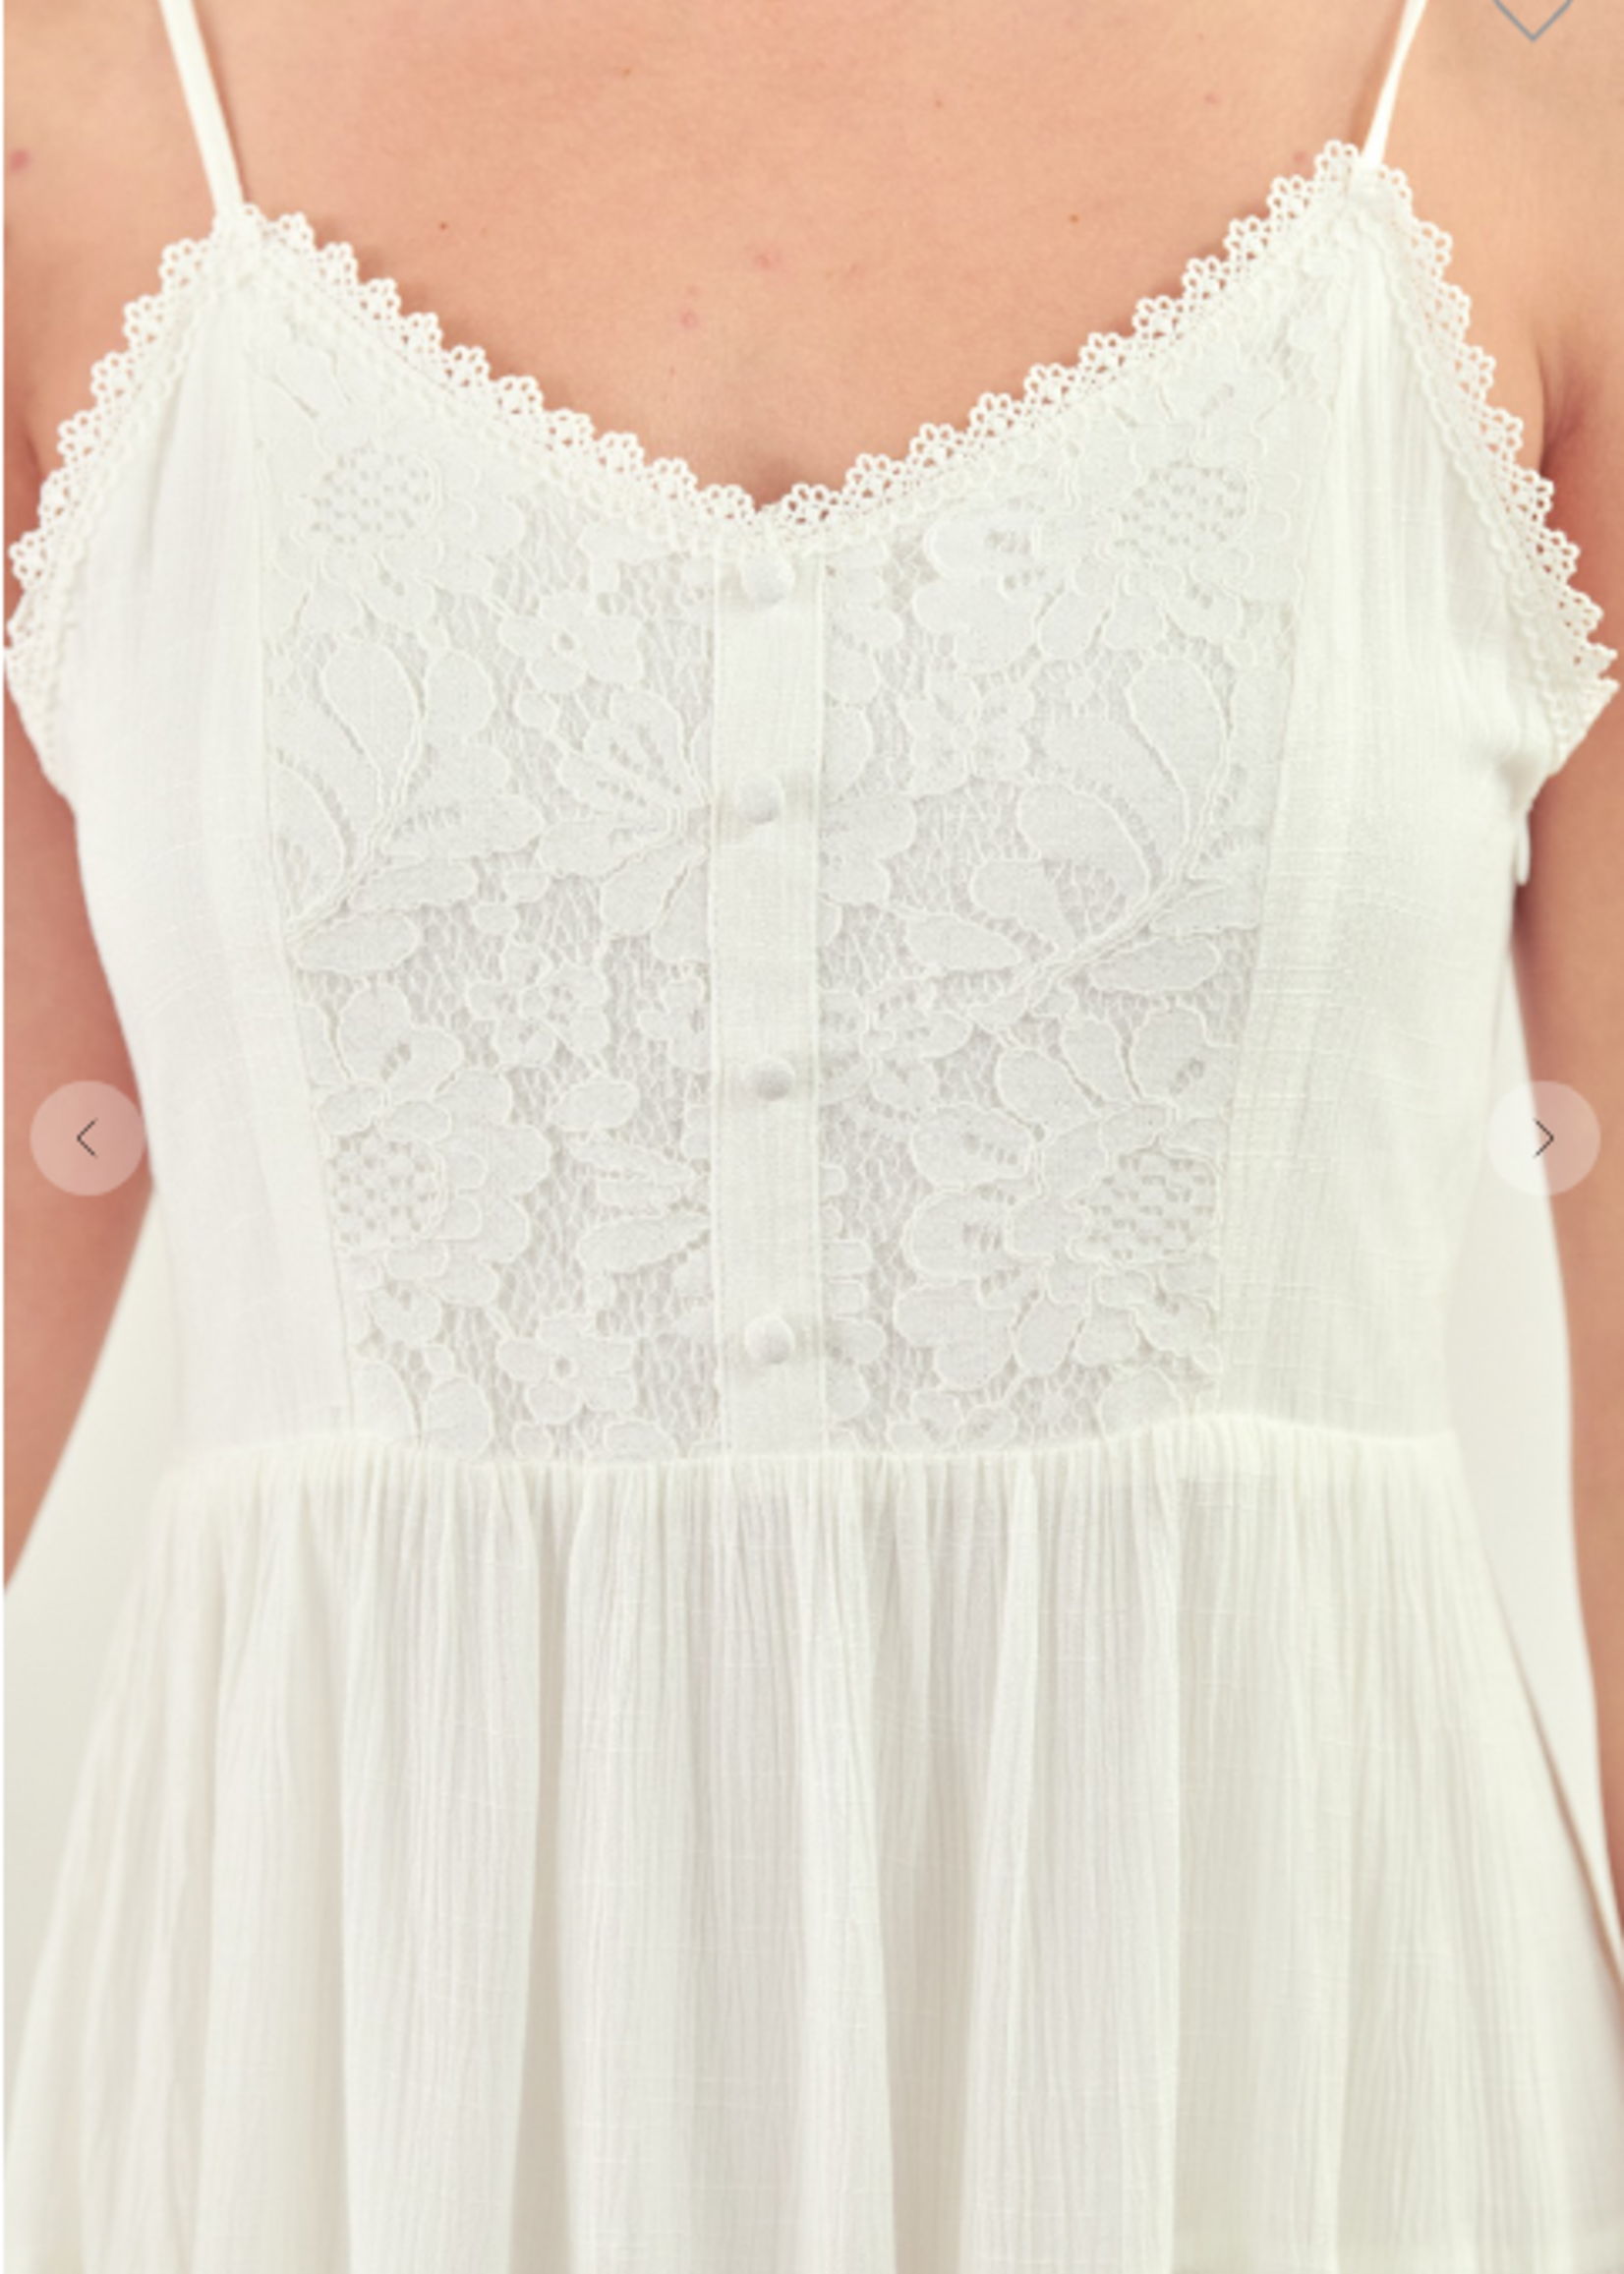 Lace Front Tiered Dress - Off White